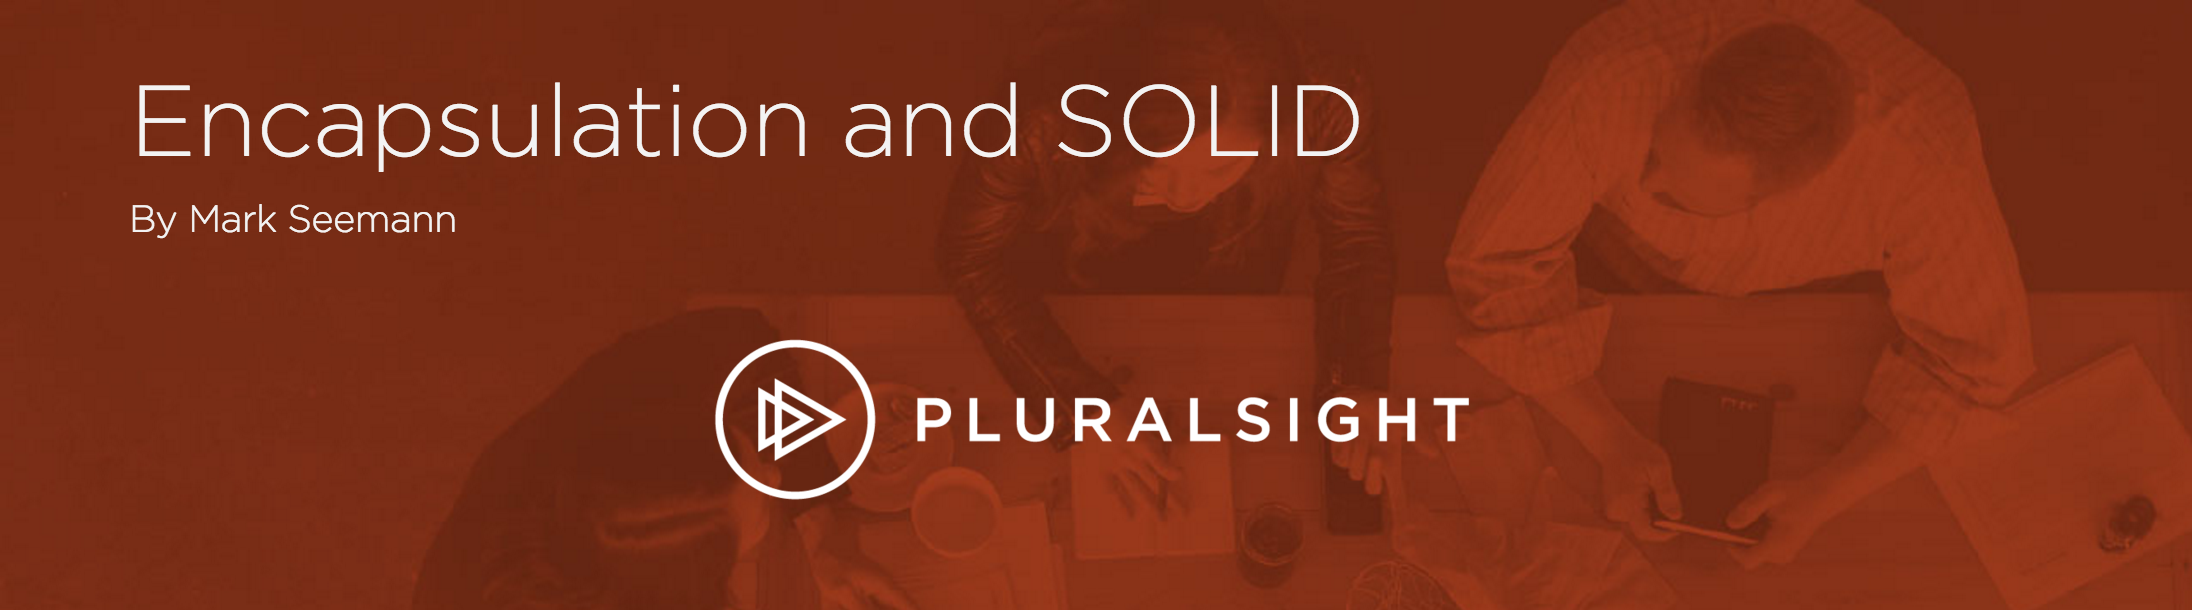 Encapsulación y SOLID de Mark Seemann en Pluralsight